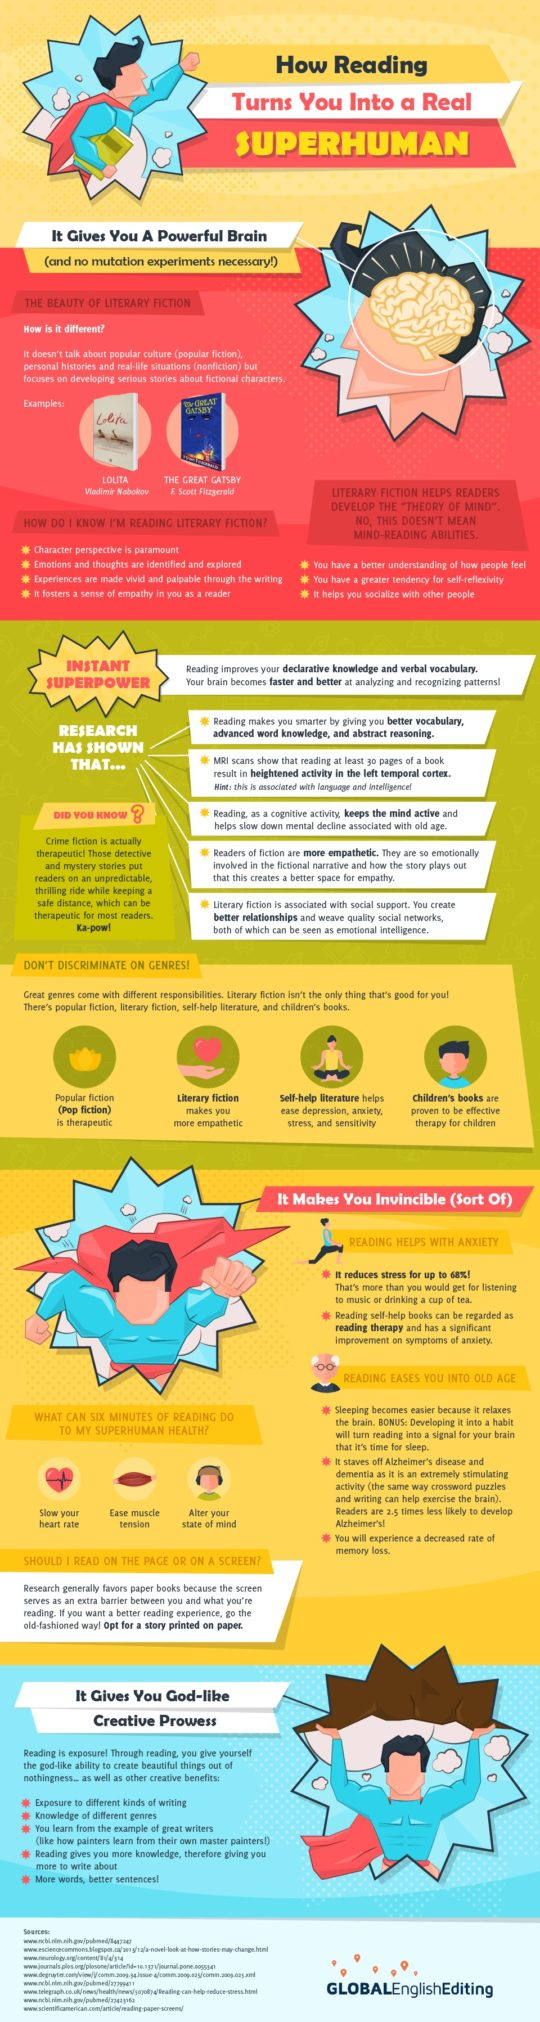 Read books to become a superhuman #infographic